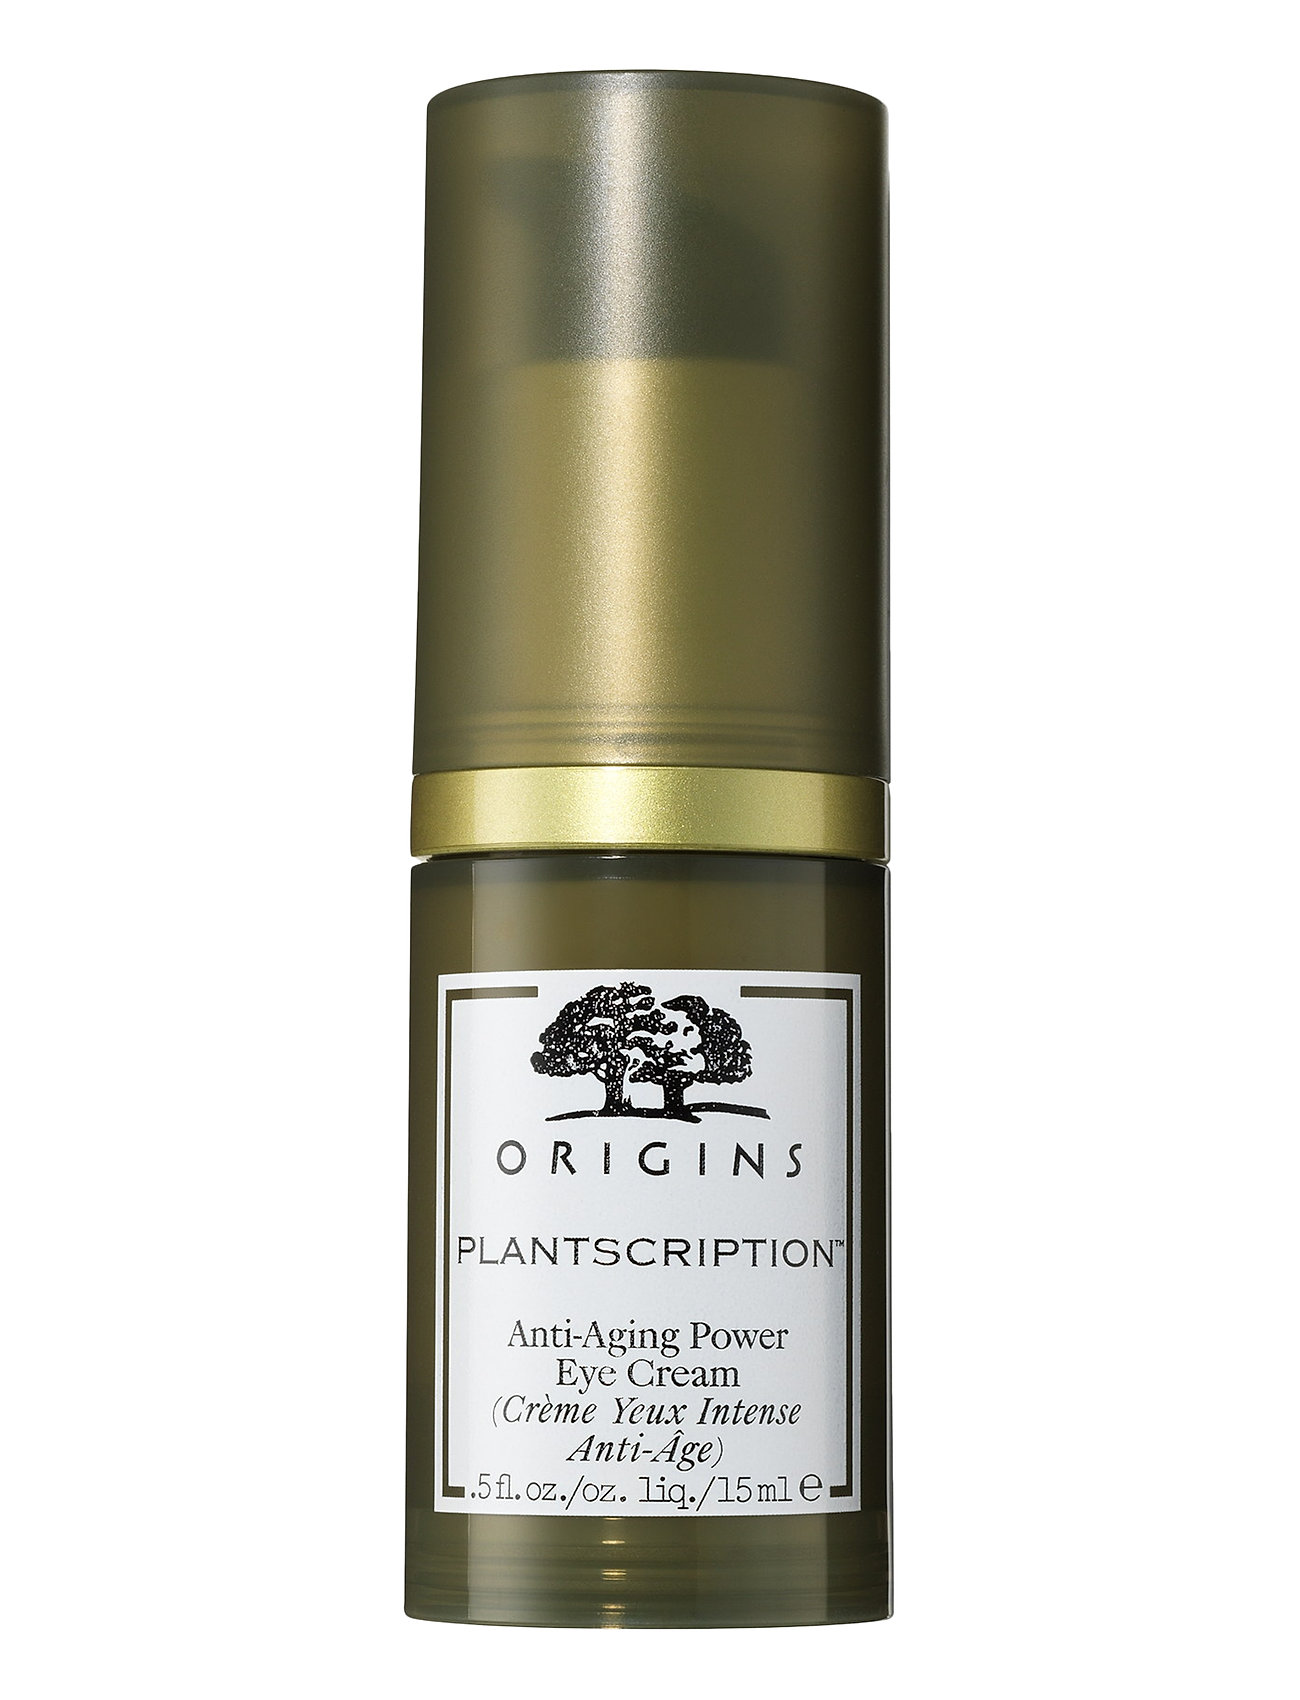 Plantscription anti-aging power eye cream fra origins på boozt.com dk